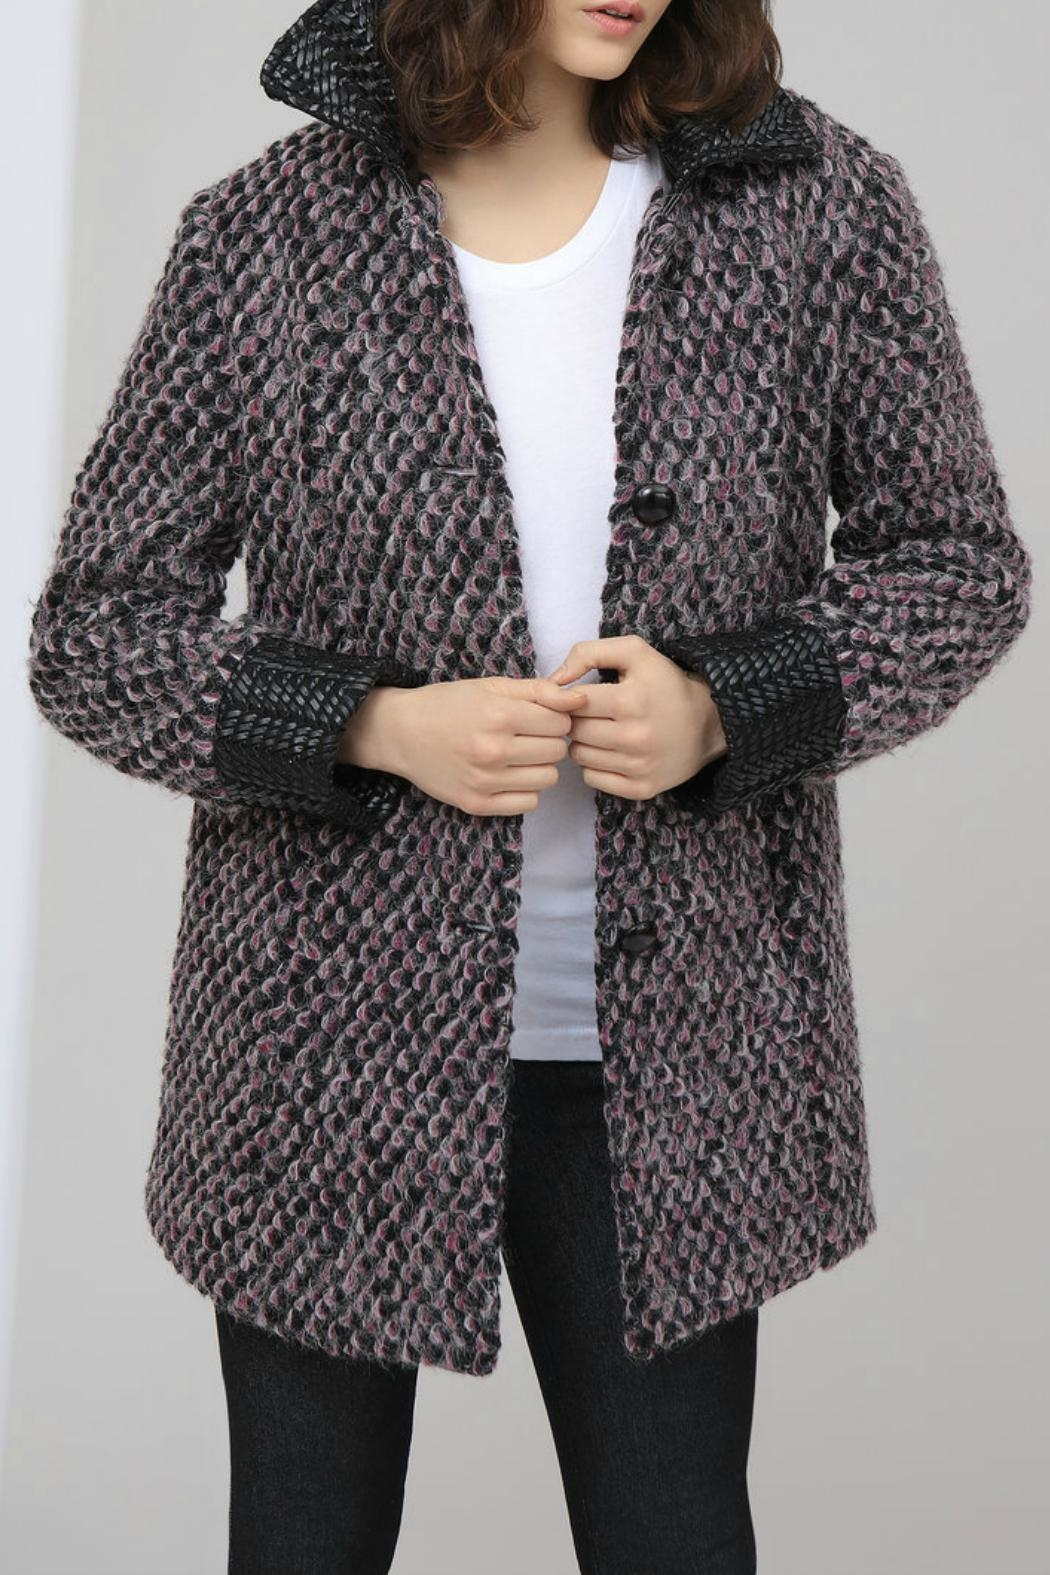 HUTCH Wool Jacquard Coat - Main Image